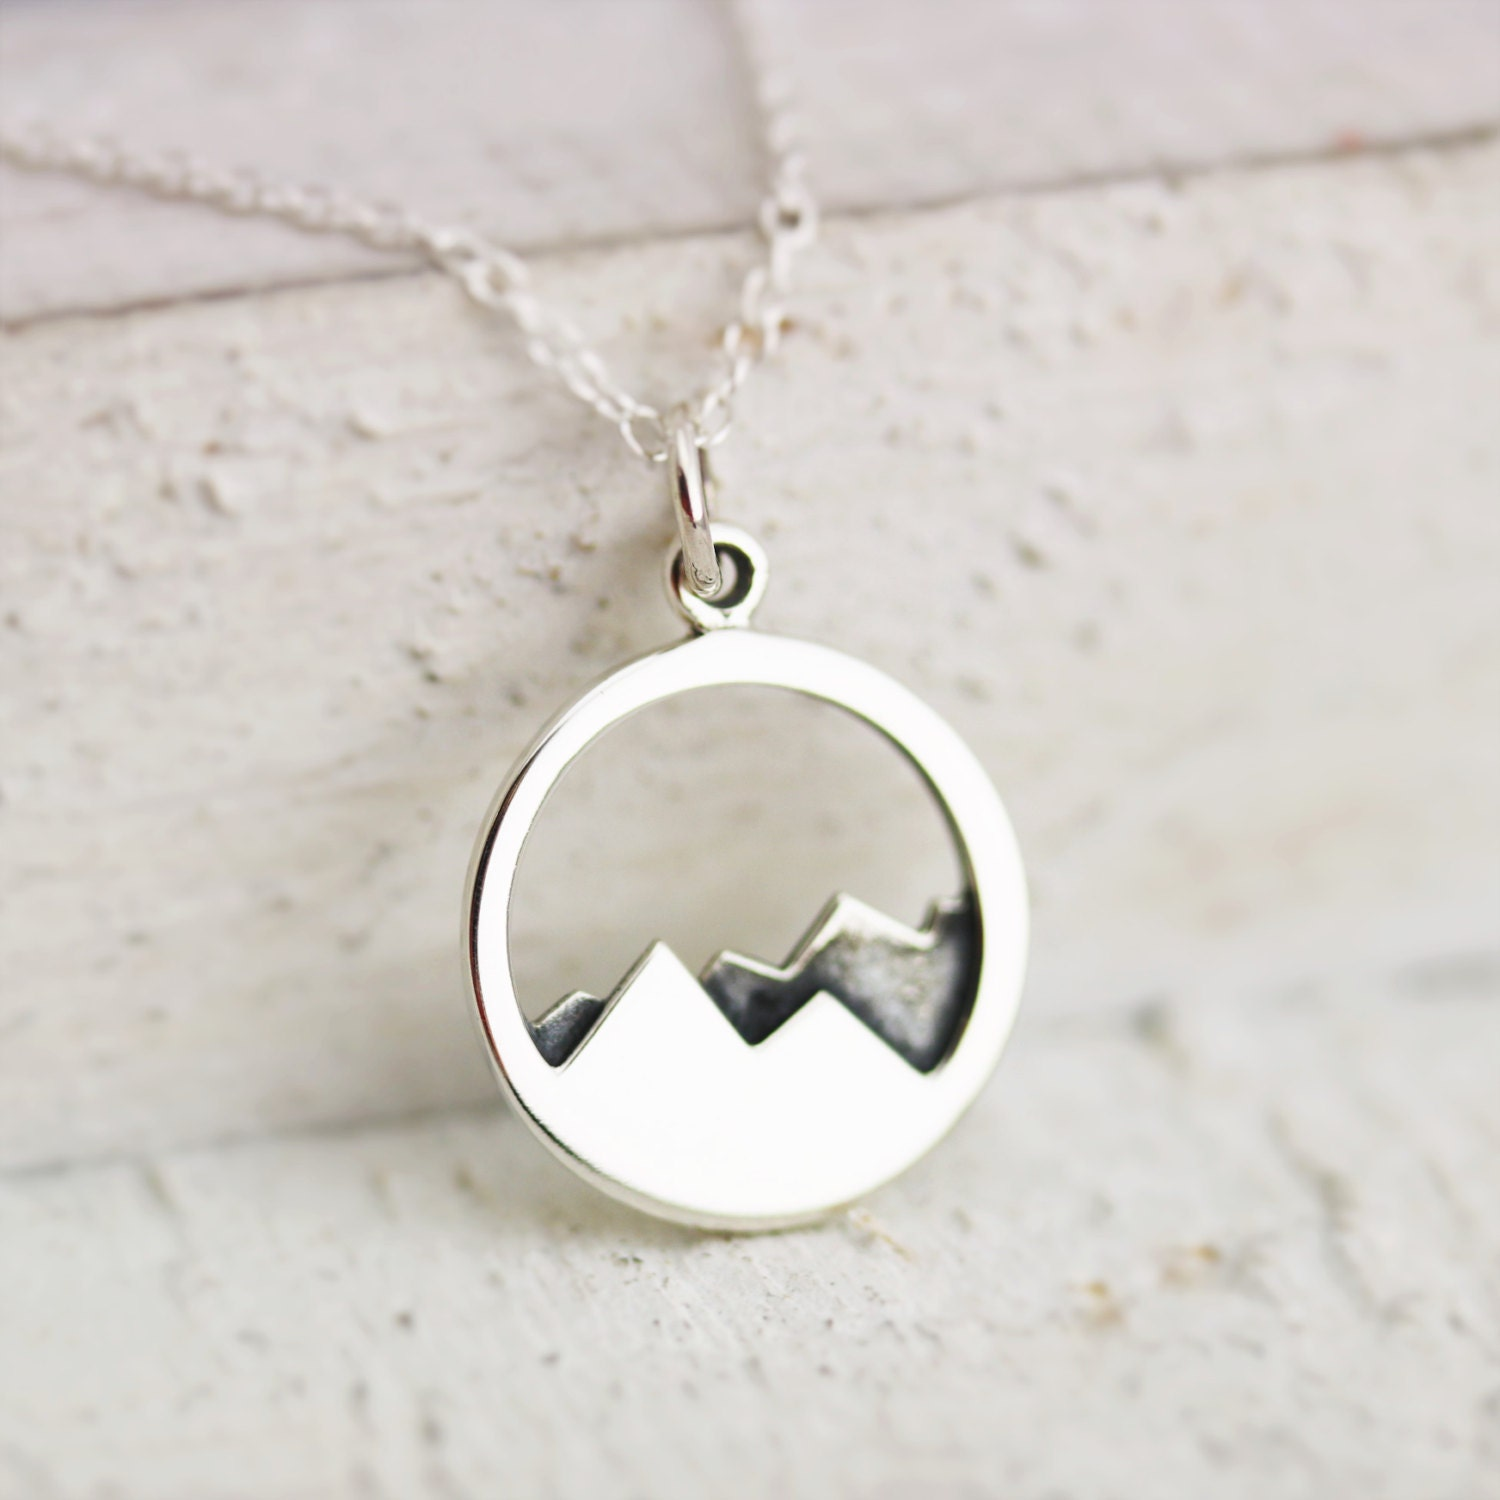 mountain necklace sterling silver mountain range necklace. Black Bedroom Furniture Sets. Home Design Ideas